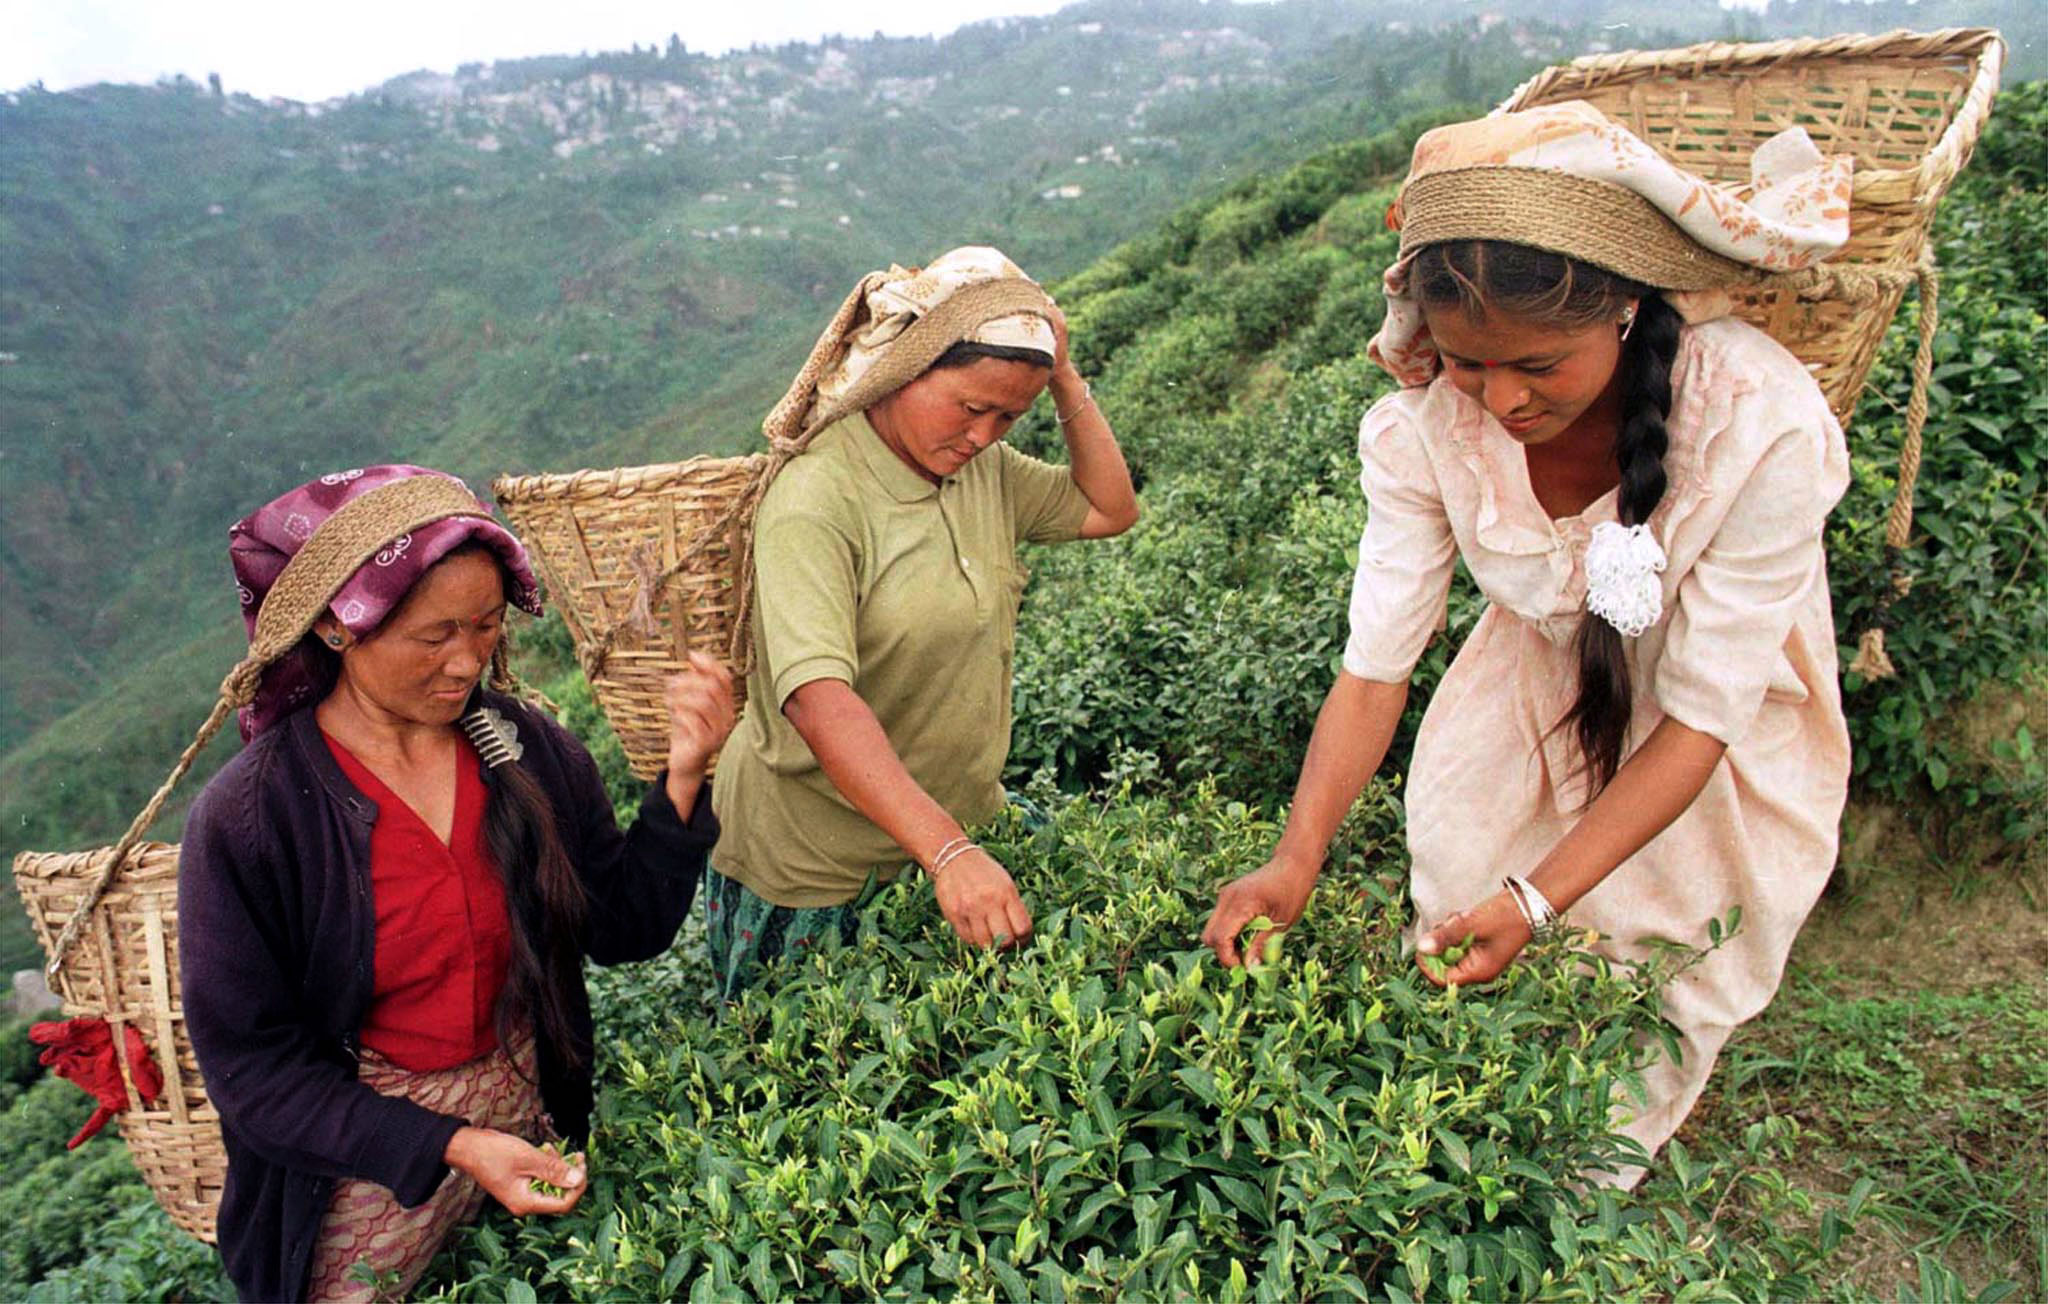 Three women pluck tea leaves at a tea gardens in the Himalayan town of Darjeeling on June 9. More than 60 percent of the tea garden workers are women. They earn 38 rupees ($1 = 43 rupees) a day. JS/DL/WS - RTRQ273